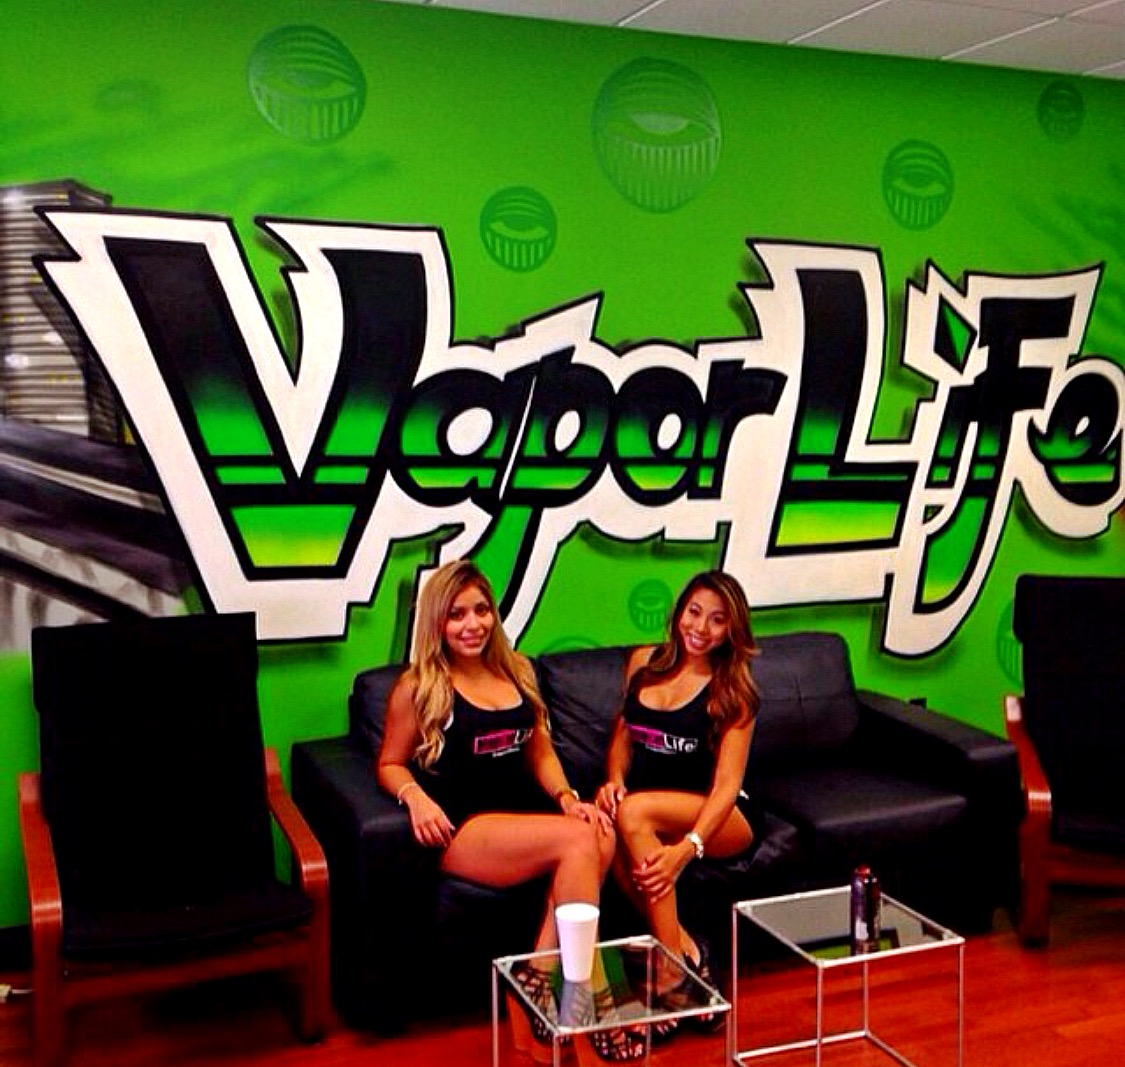 Vapor Life USA new location mural Downtown Miami, Fl